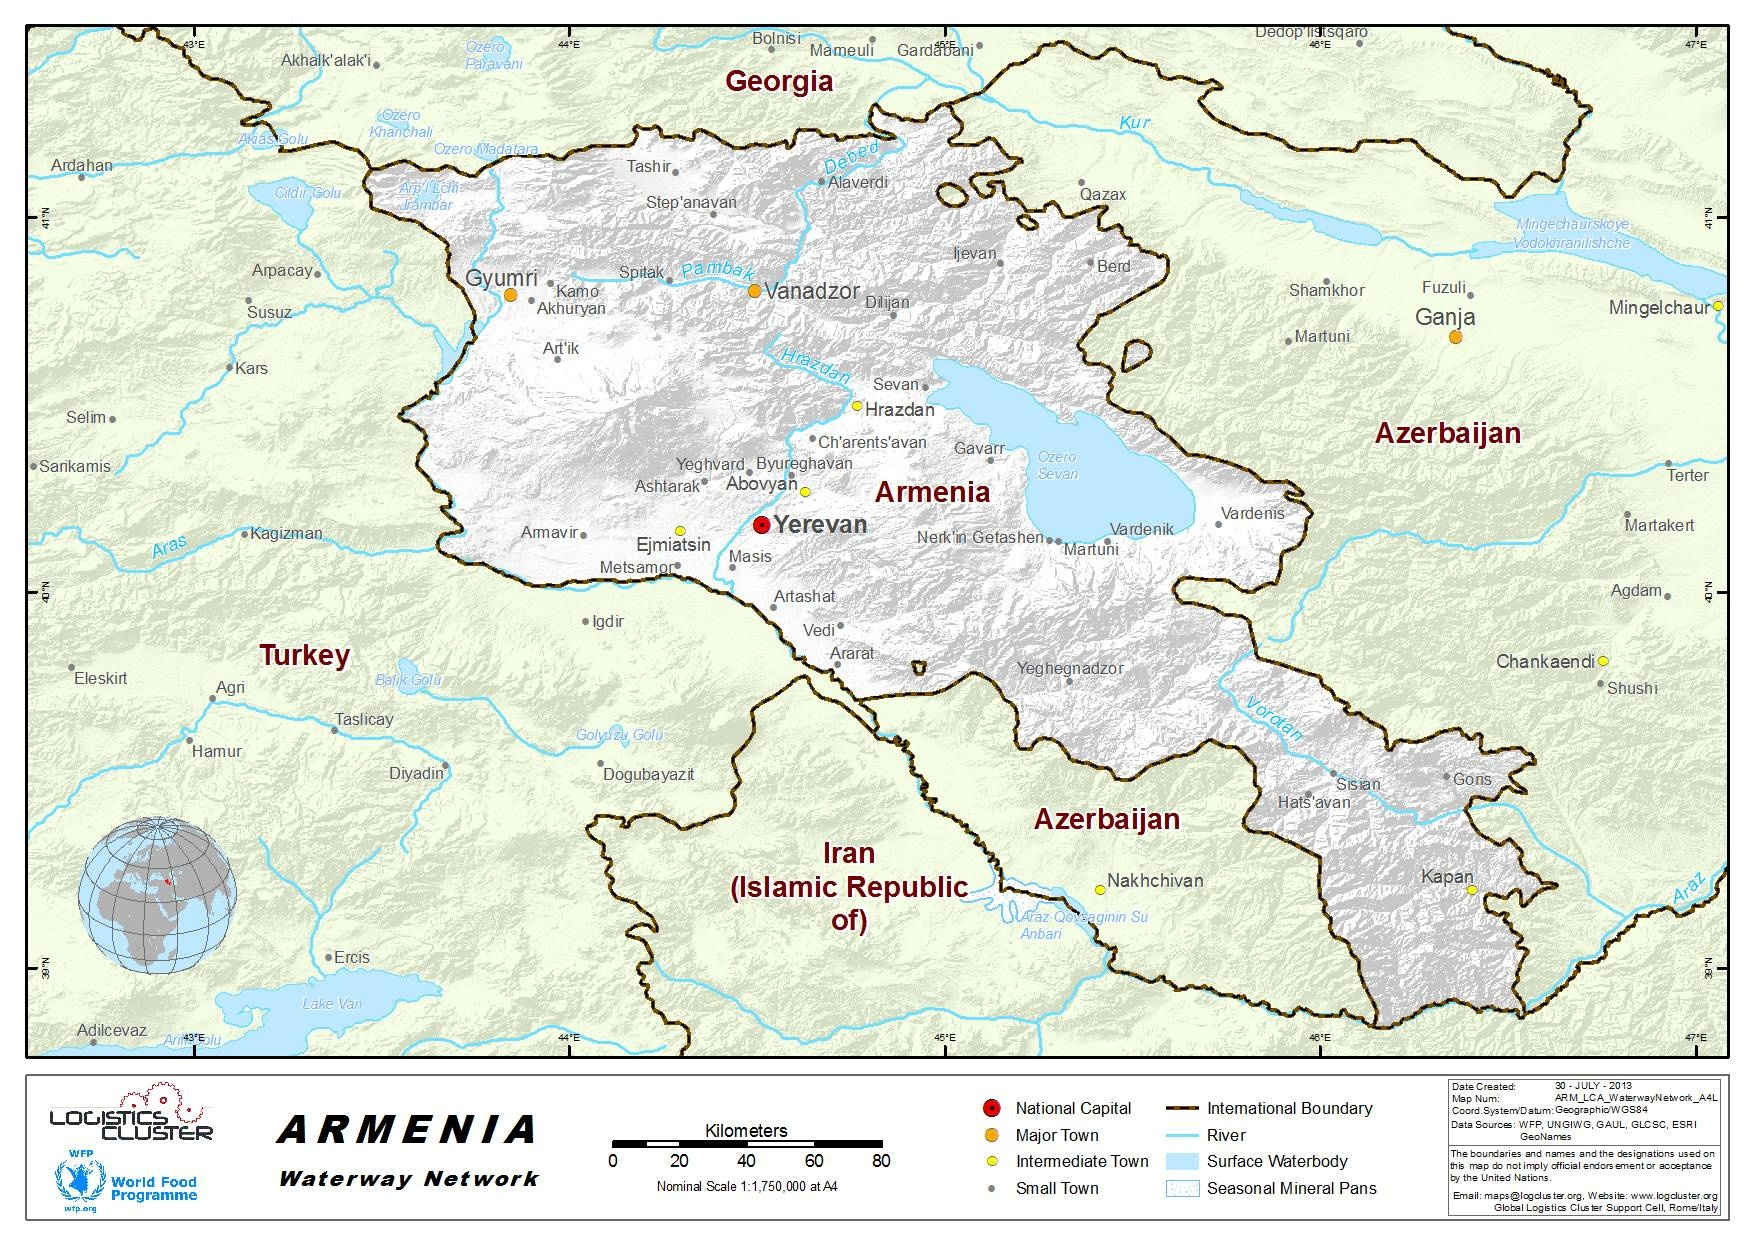 Armenia Waterways